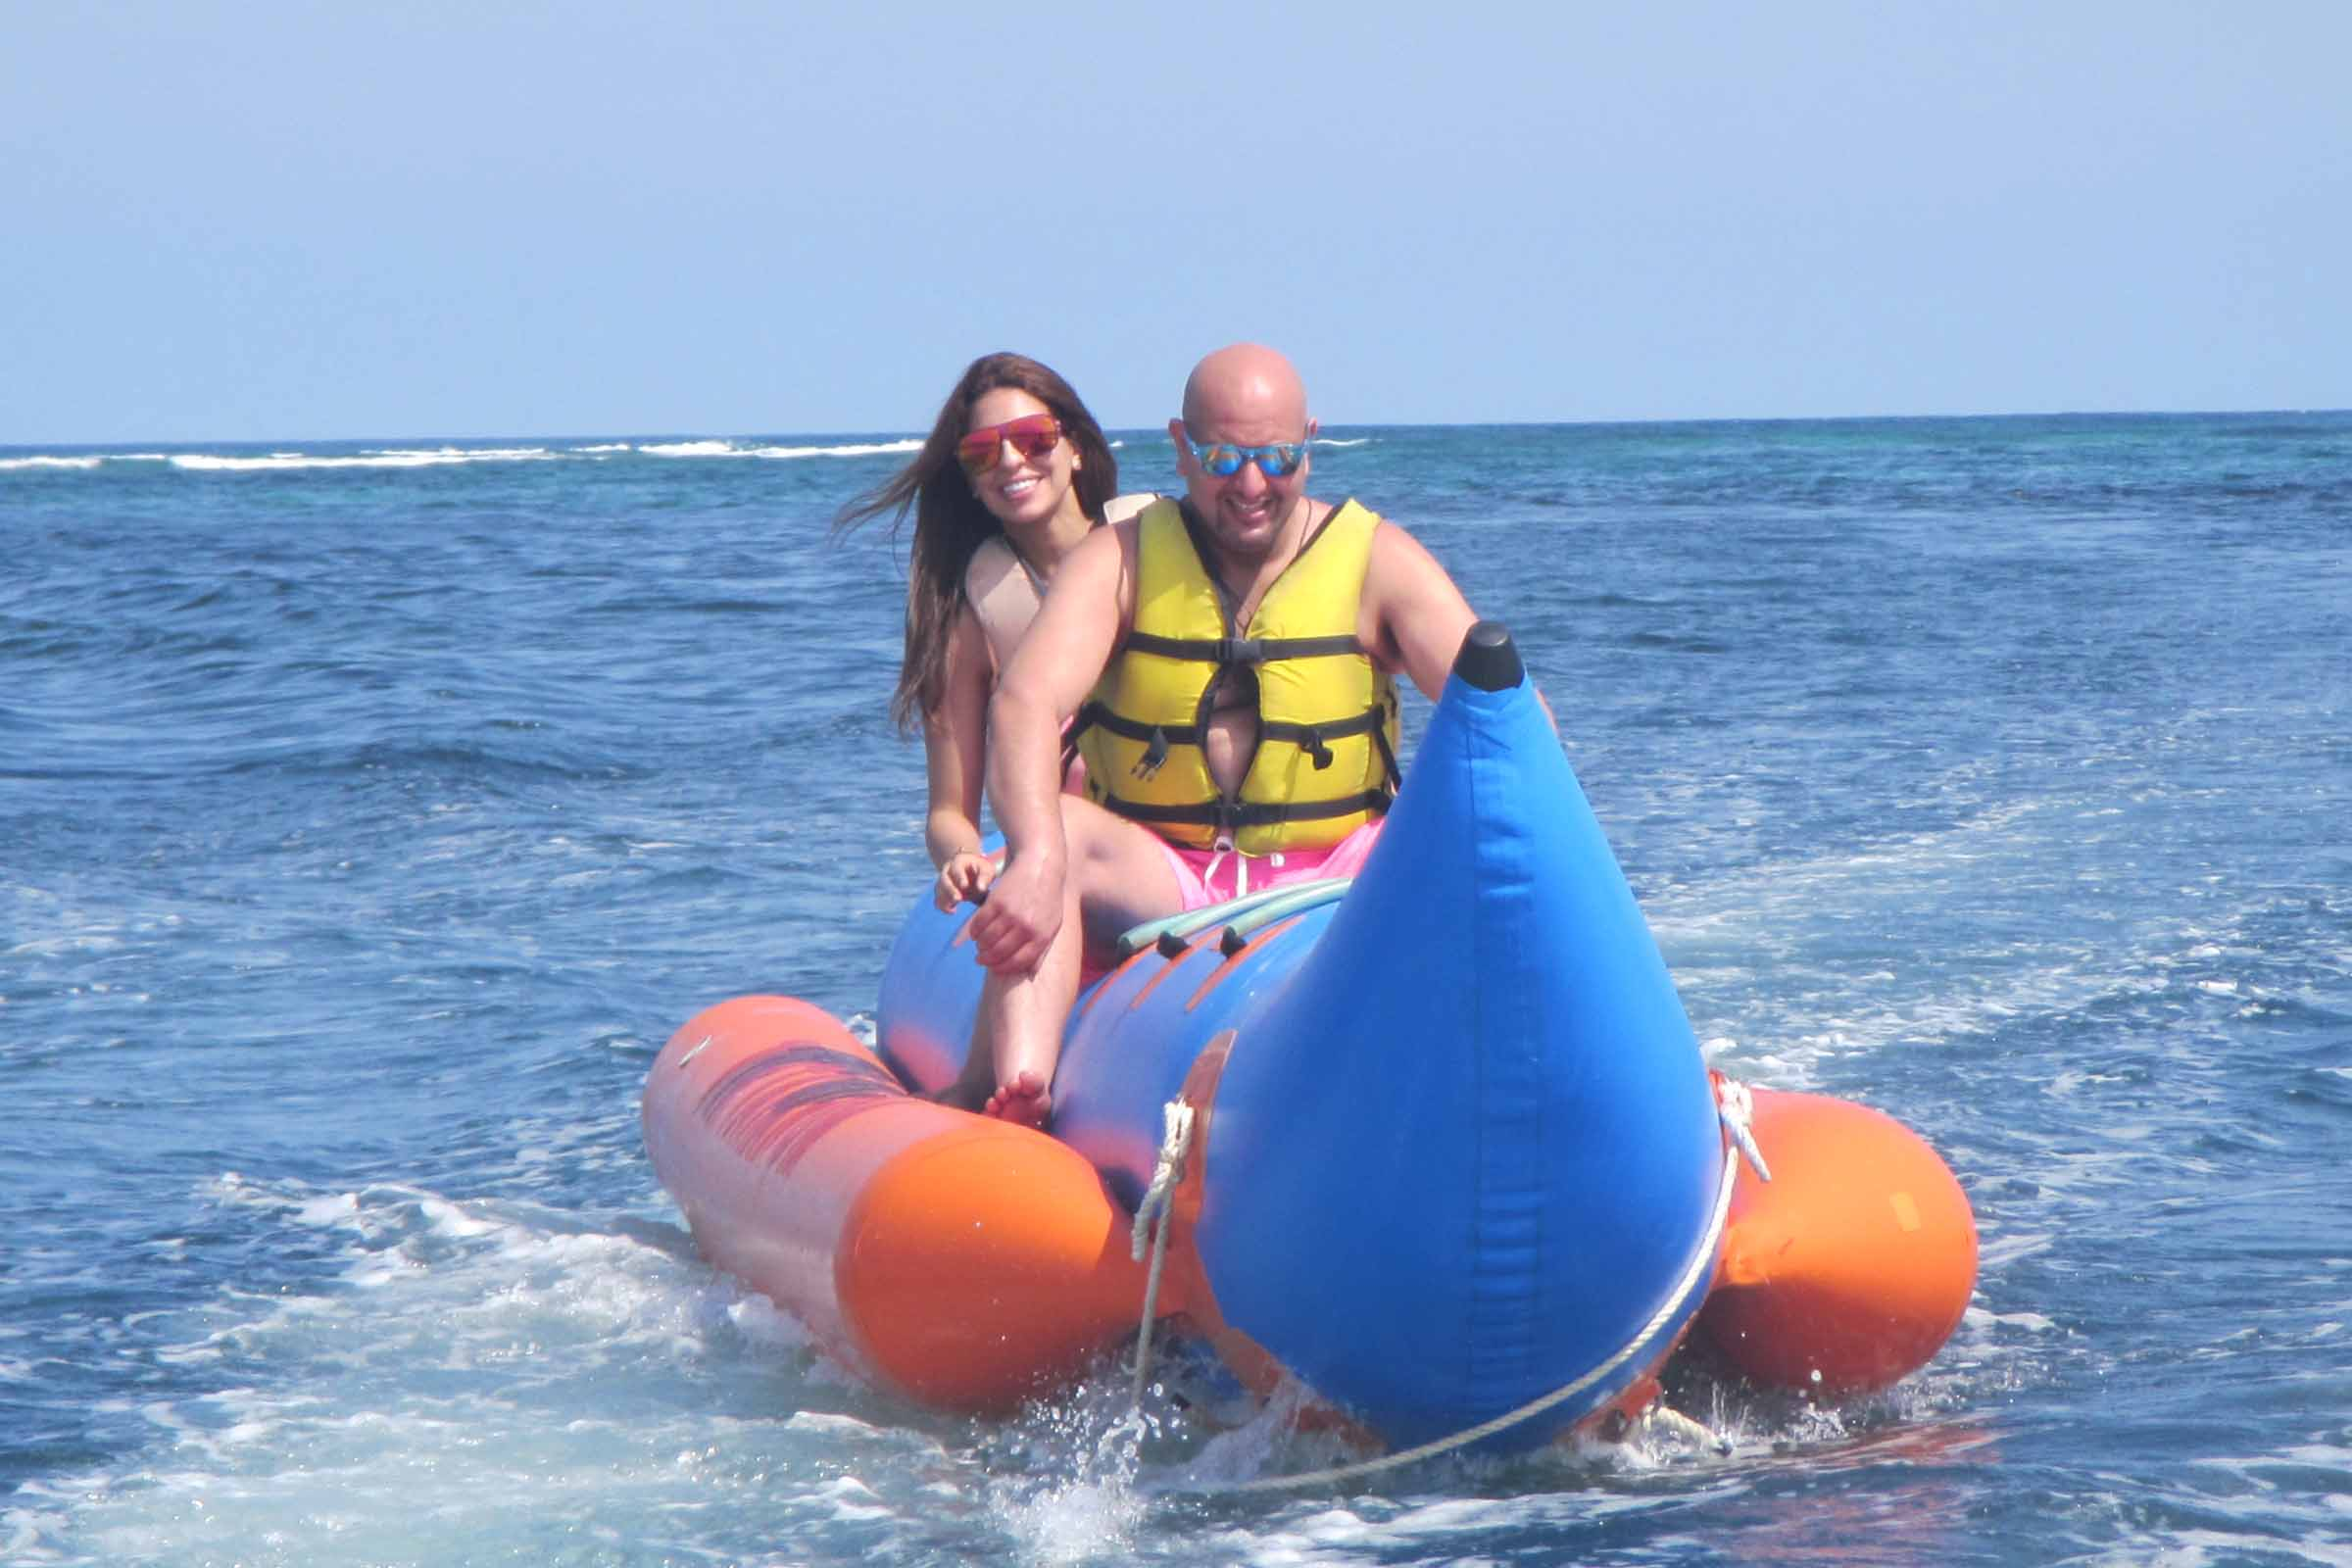 BOOK ONE DAY BEFORE !!!Min - 2 fax (15 Minutes)BANANA BOAT  Banana boat is an inflatable recreational boat meant for towing by speed boat.  Different models usually accommodate three to ten rides si